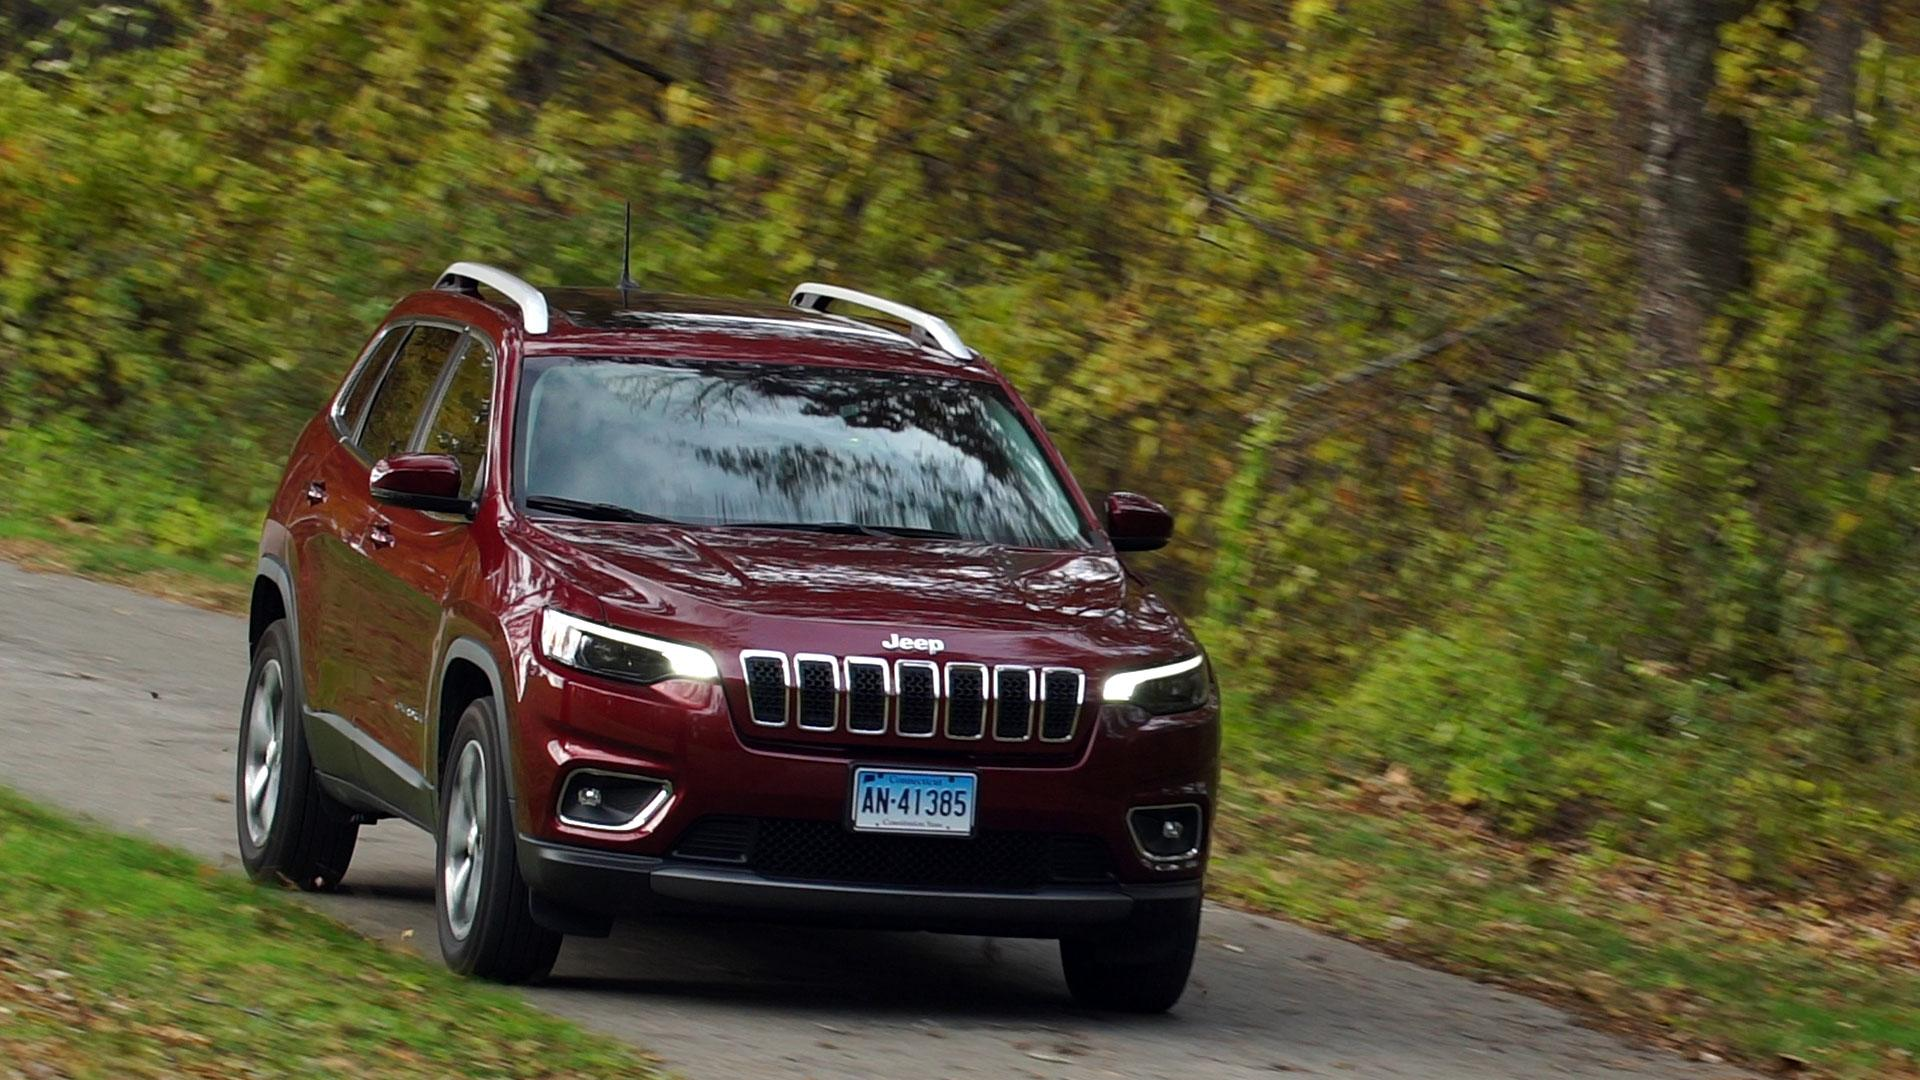 2019 Jeep Cherokee Adds Turbo - Consumer Reports